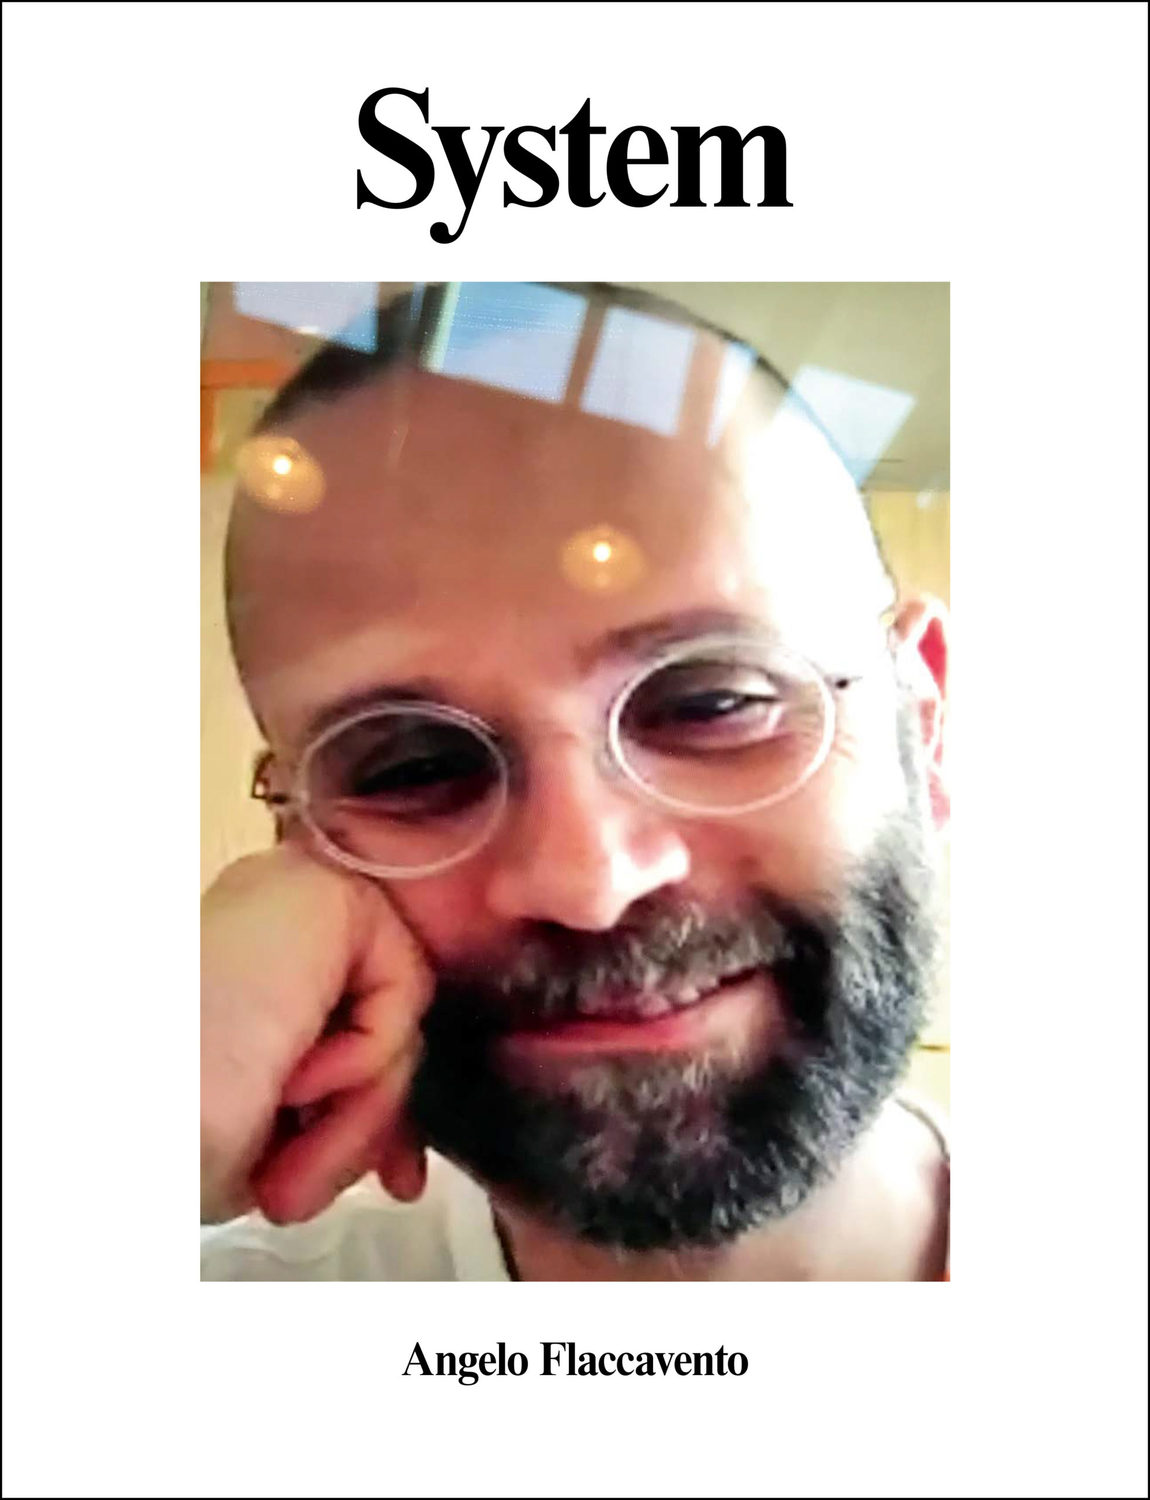 SYSTEM15-COVER-Angelo-Flaccavento-scaled.jpg